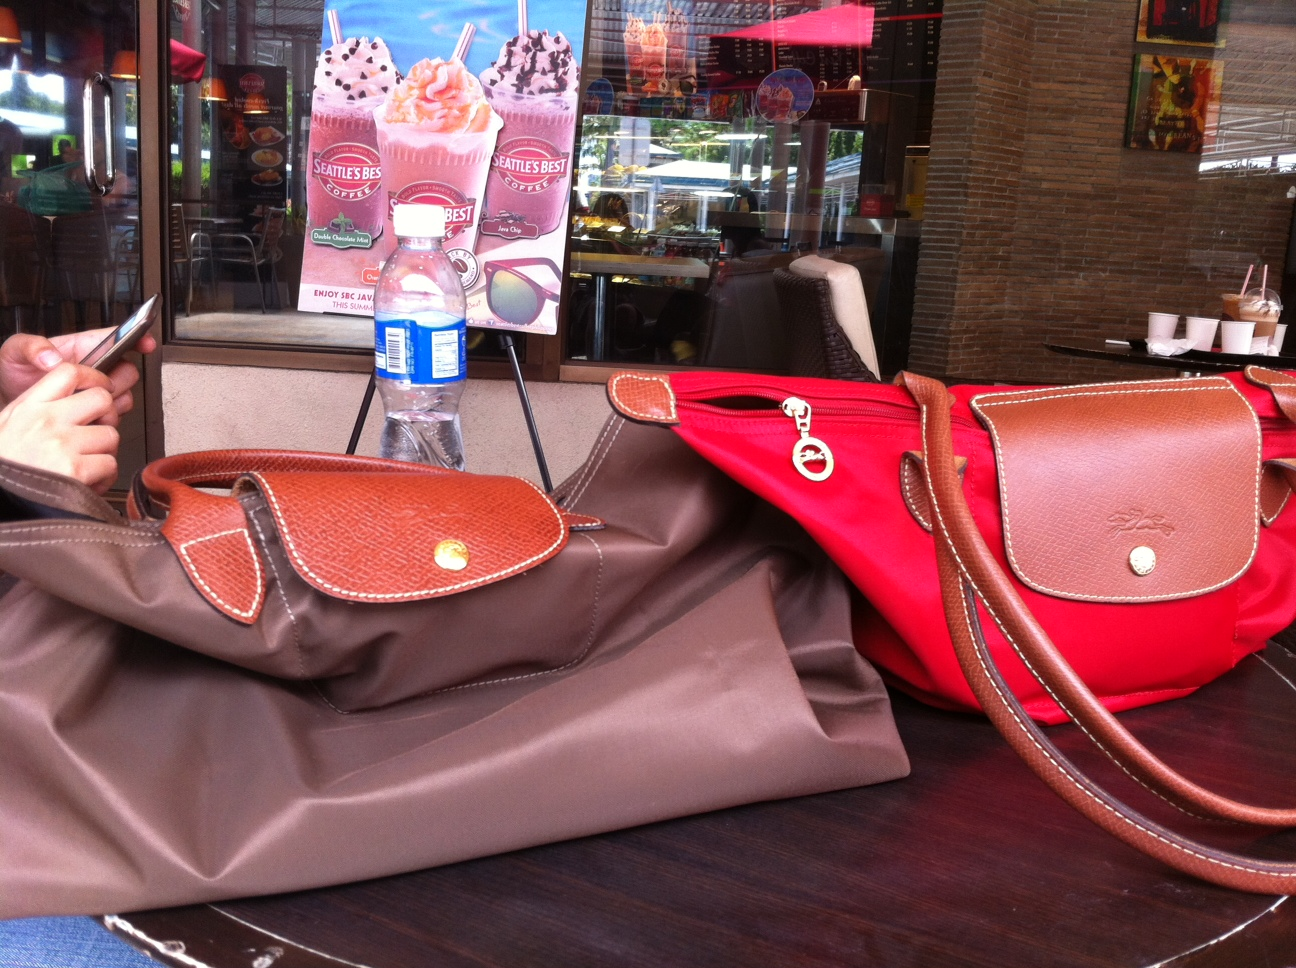 Michael kors tote bags philippines - The Two Longchamp Bags Look The Same At First Glance But The Plastic Material Feels Different The Brown Bag Feels Slightly Coarser More Durable